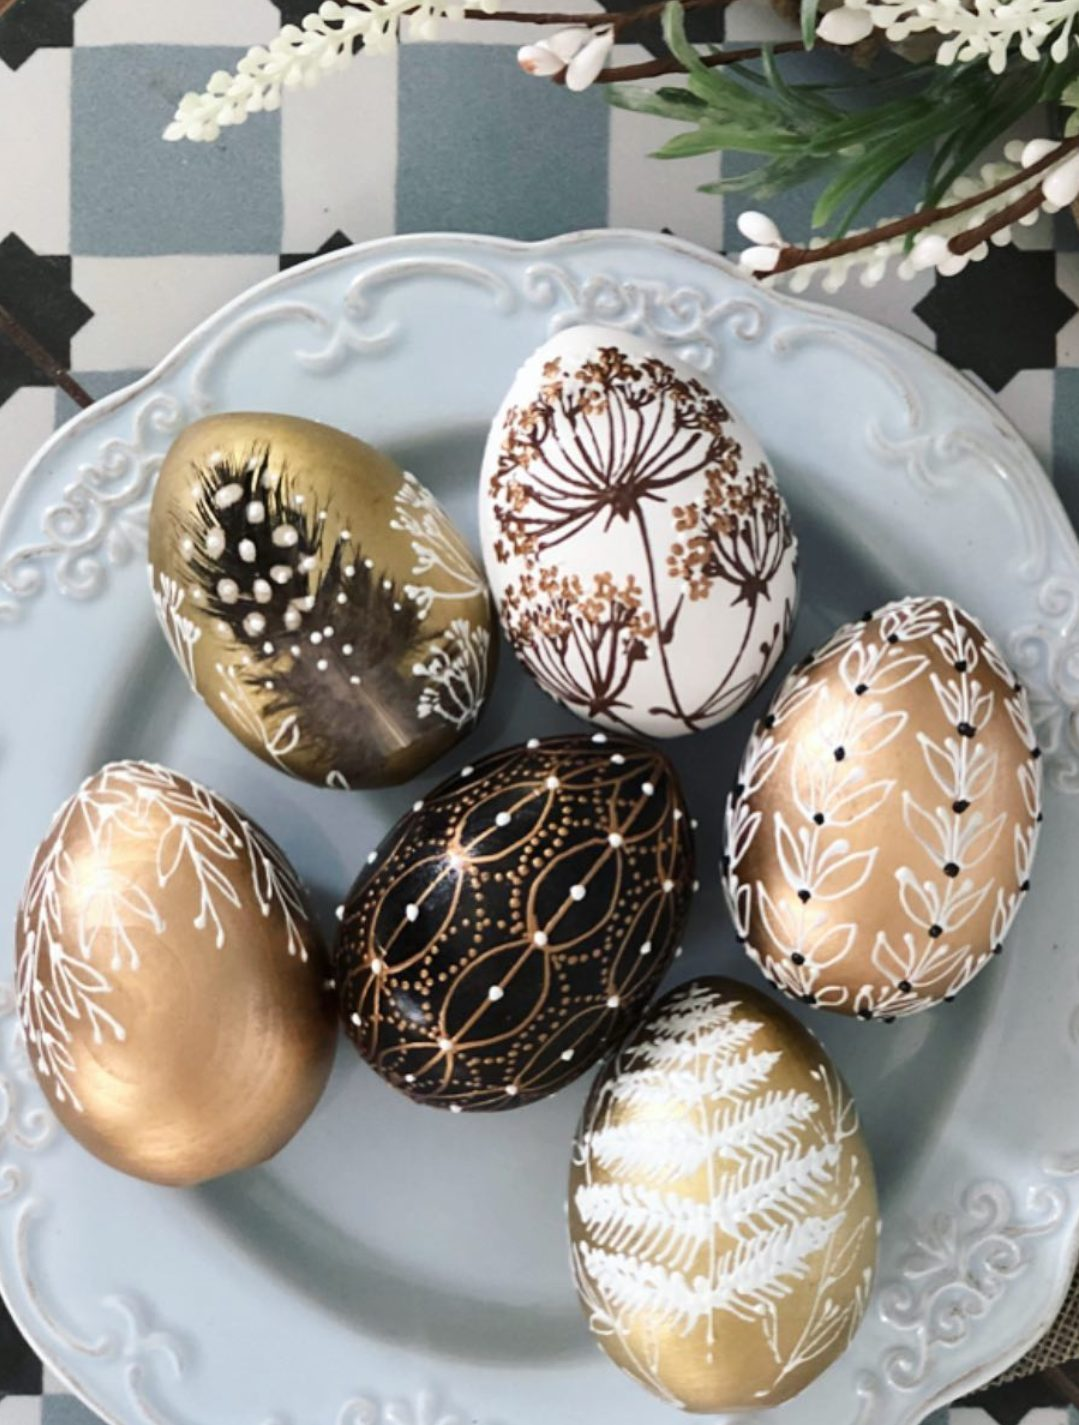 Rose gold, black and gold Easter egg decorating ideas